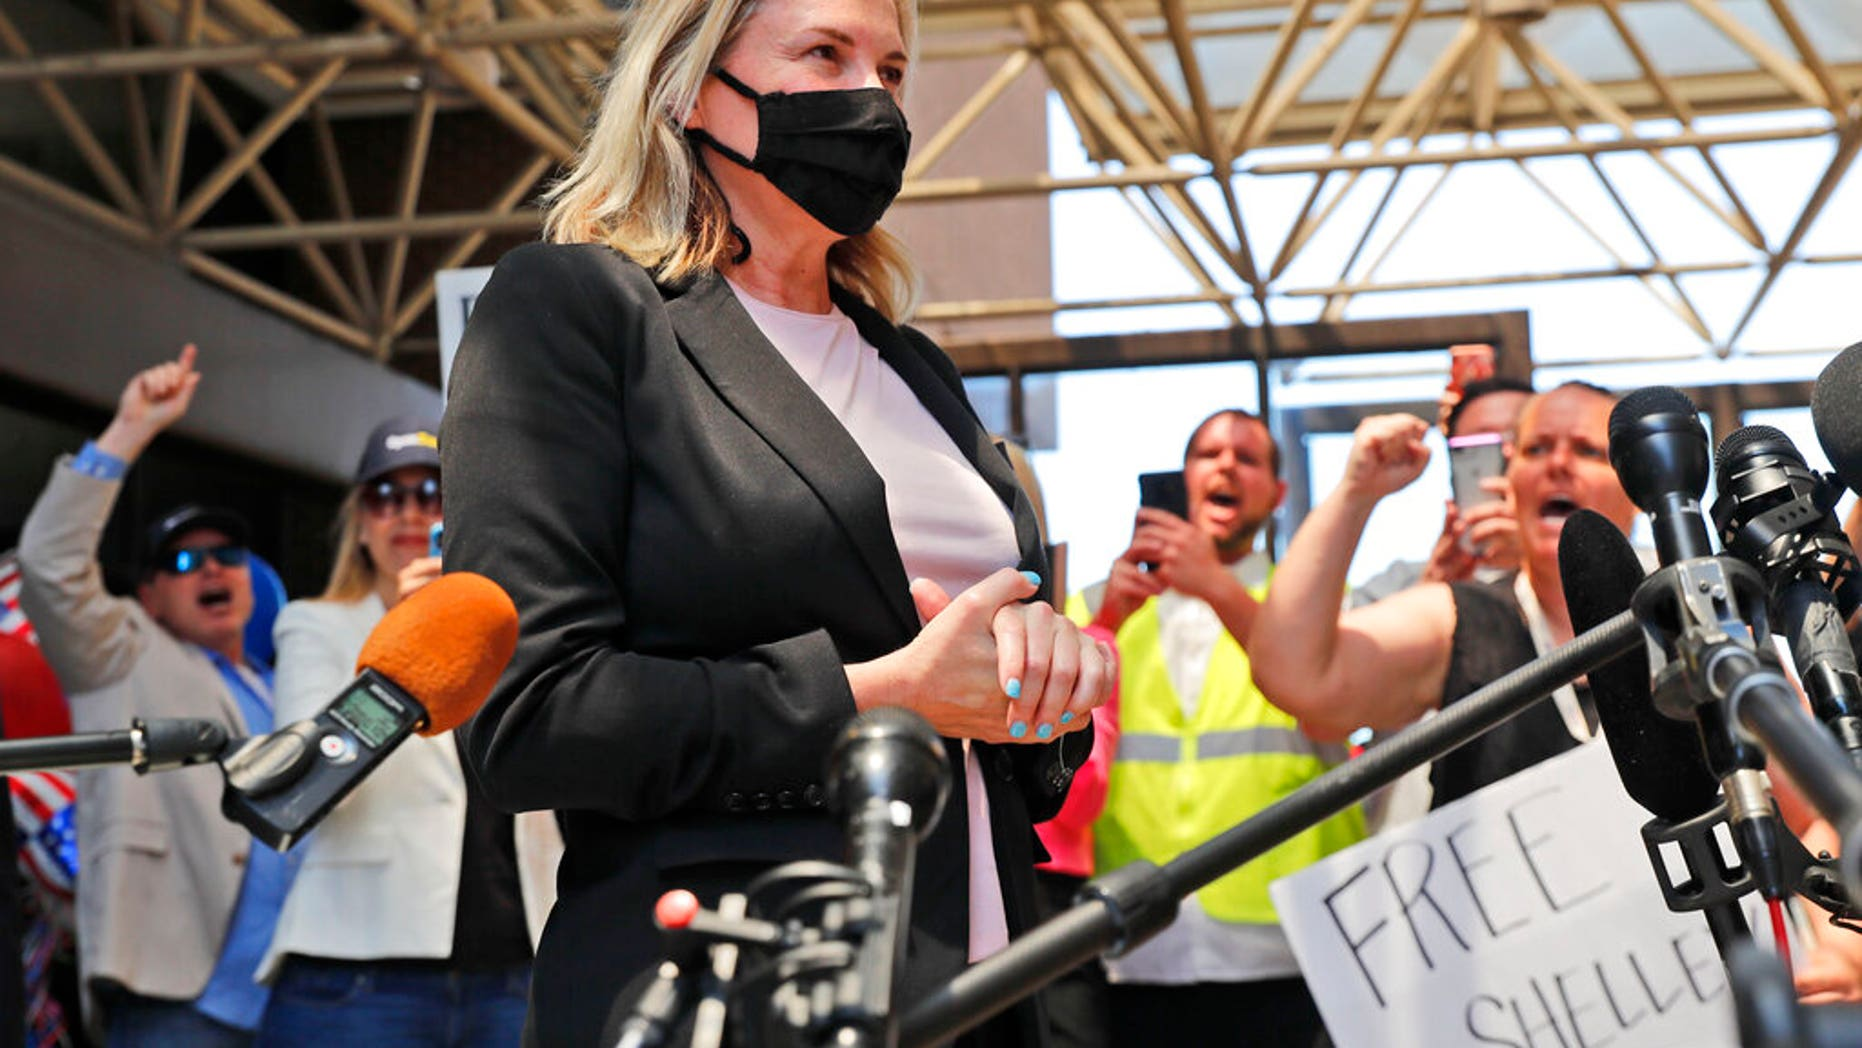 Salon owner Shelley Luther begins to speak to the media after she was released from jail in Dallas, Thursday, May 7, 2020. (AP Photo/LM Otero)